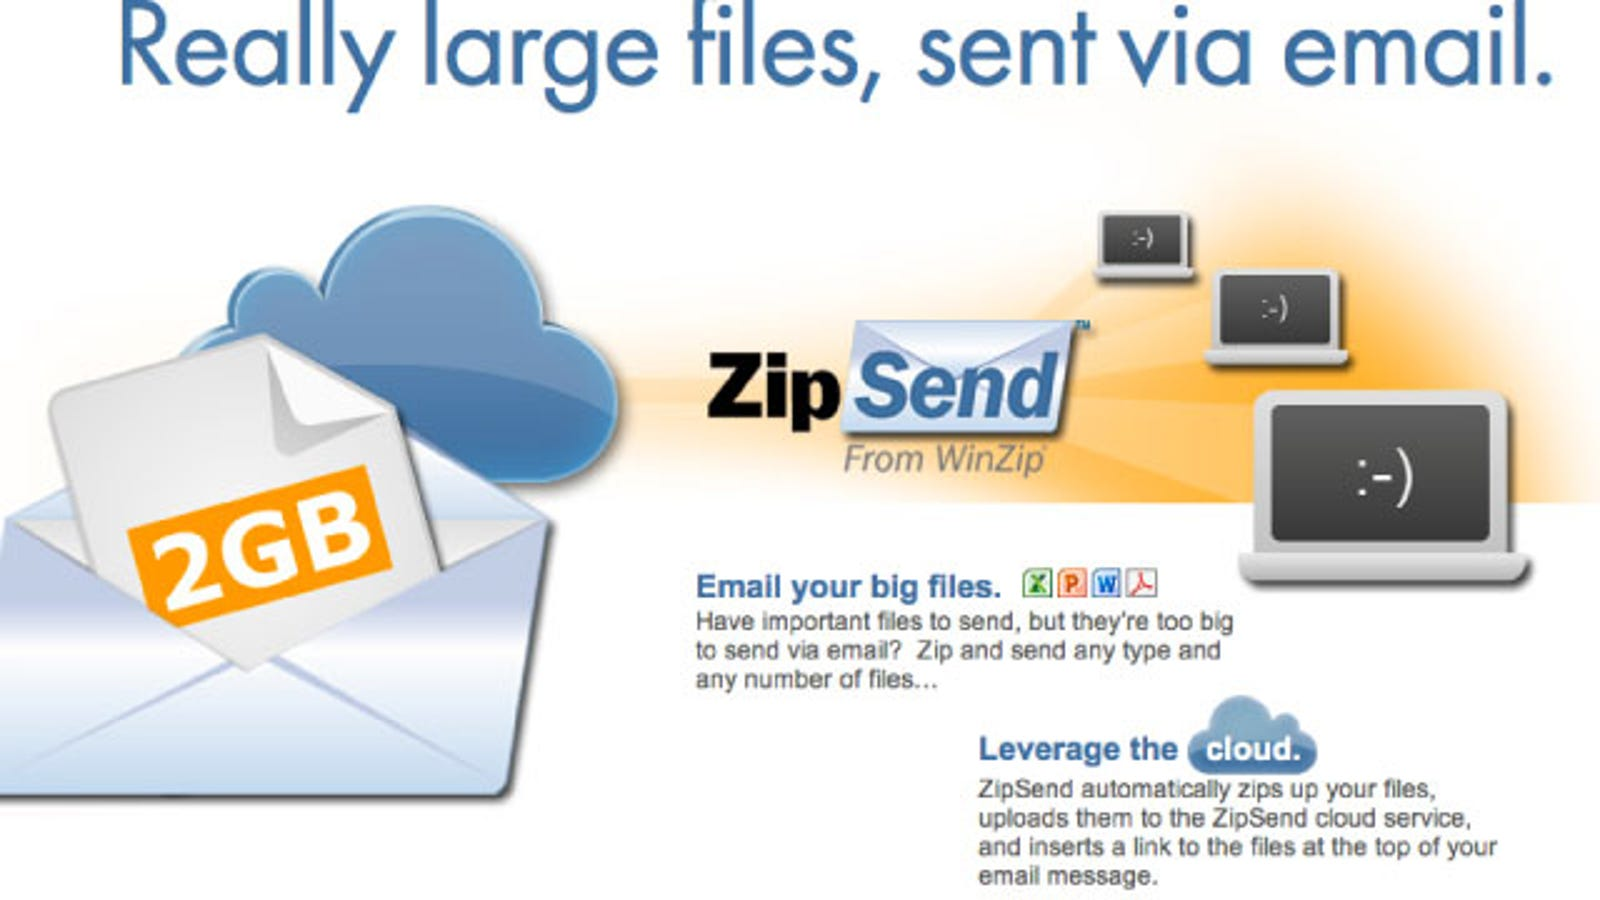 send large files via email